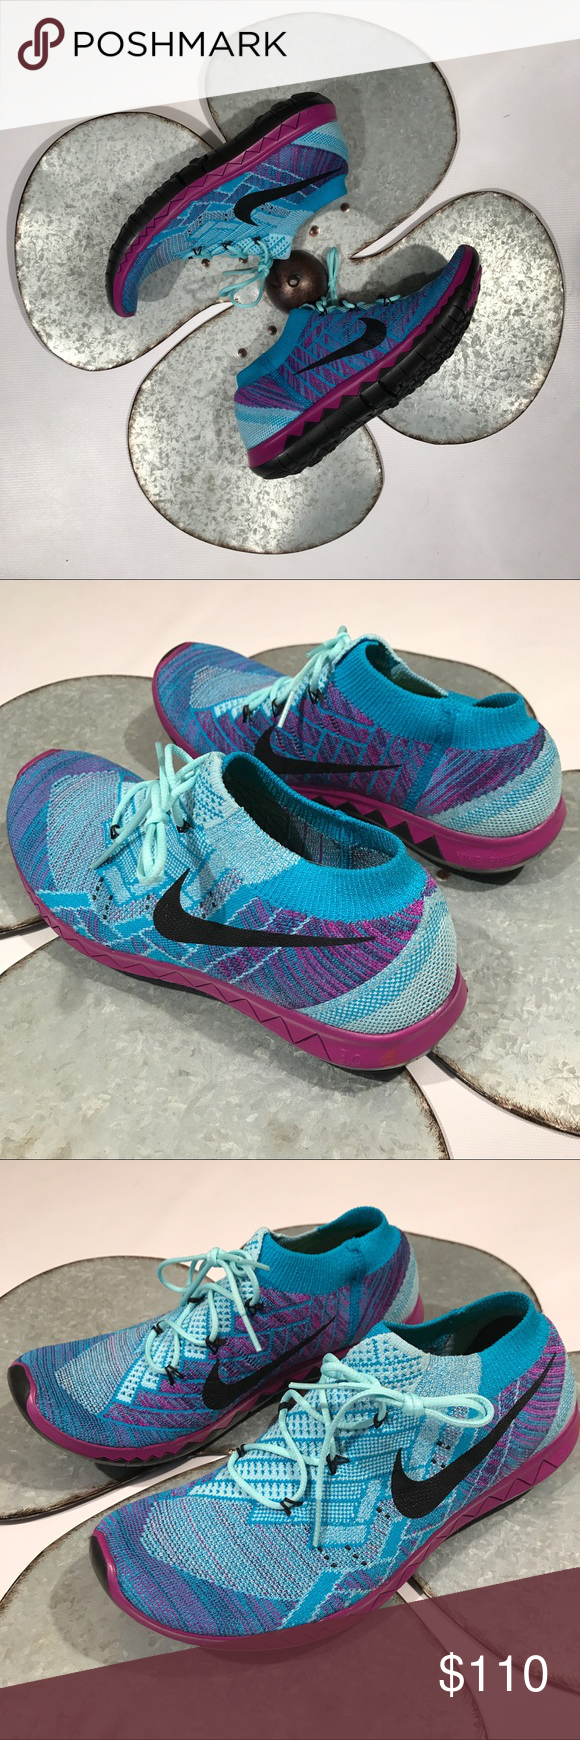 on sale 8a79c 1c2ac New Nike Free 3.0 Flyknit Blue Purple Women s 8.5 Product Information  WOMENS NIKE FREE 3.0 FLYKNIT SHOES COPA BLUE BLACK PURPLE HEATHER SIZE   WOMENS 8.5 US, ...